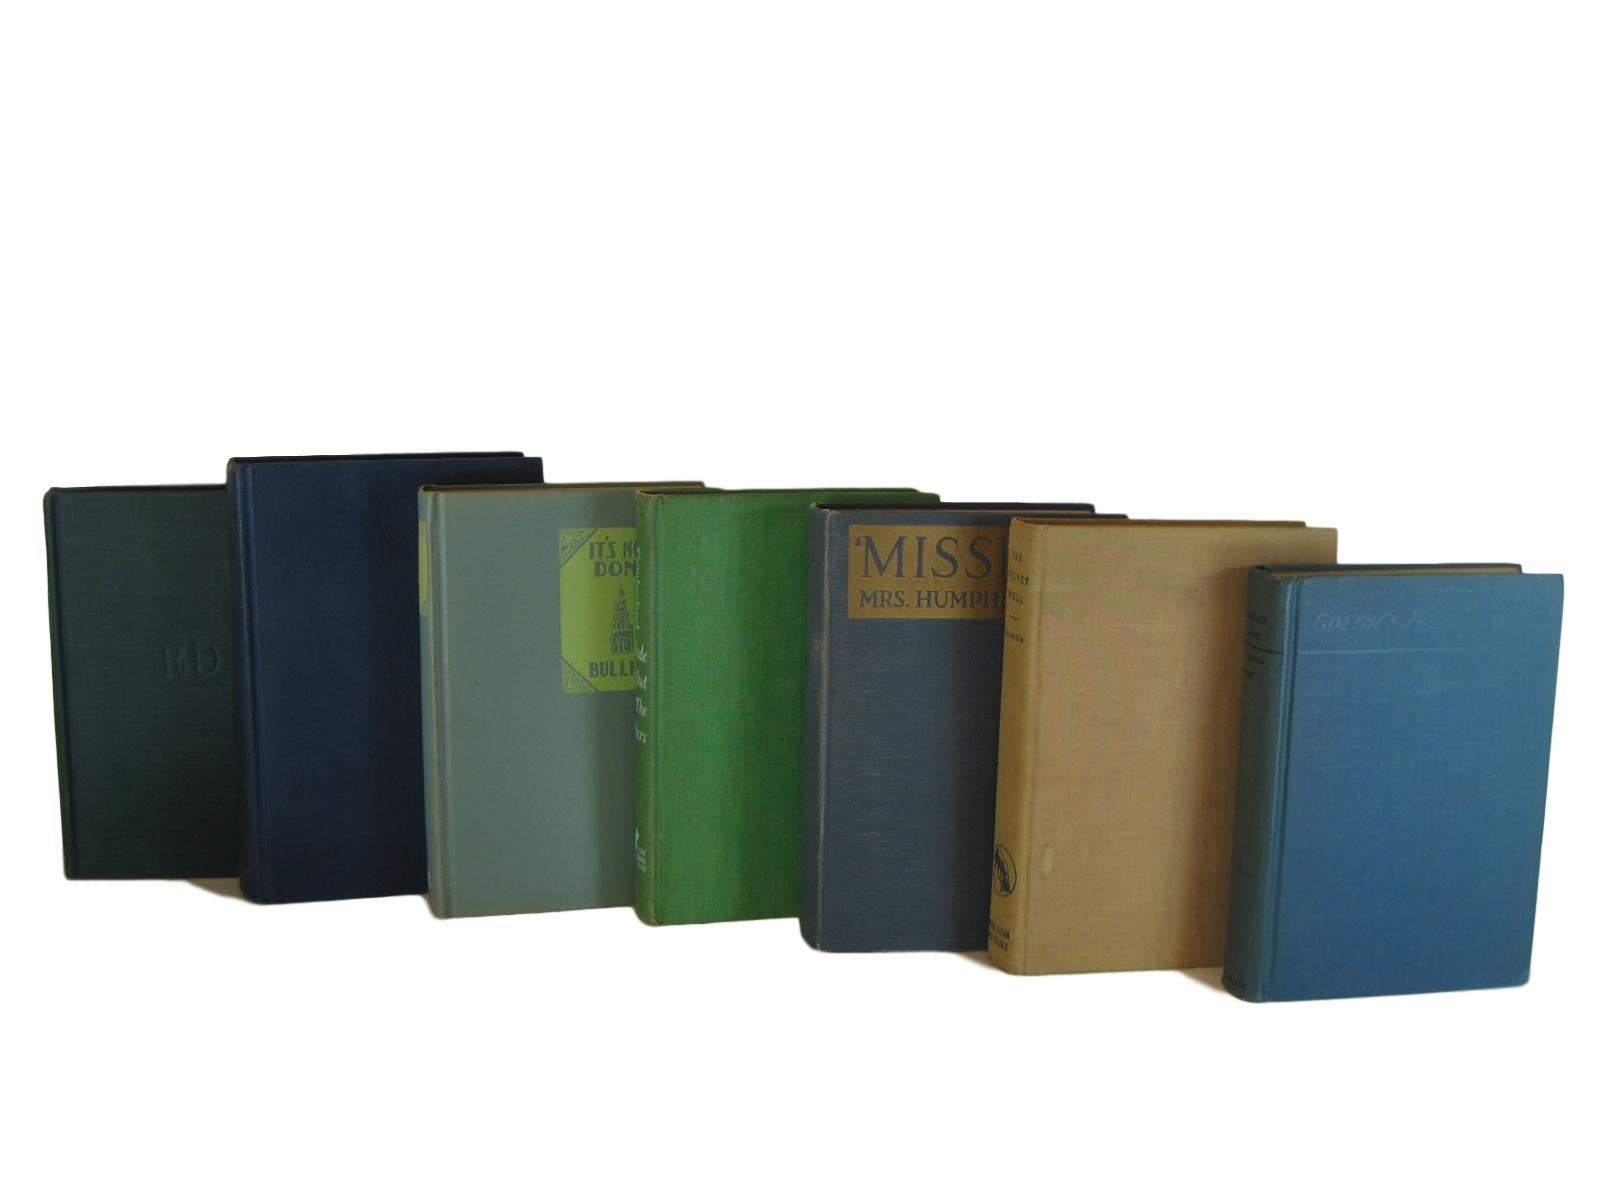 Antique and Vintage Decorative Books in Blue and Green, S/7 - Decades of Vintage